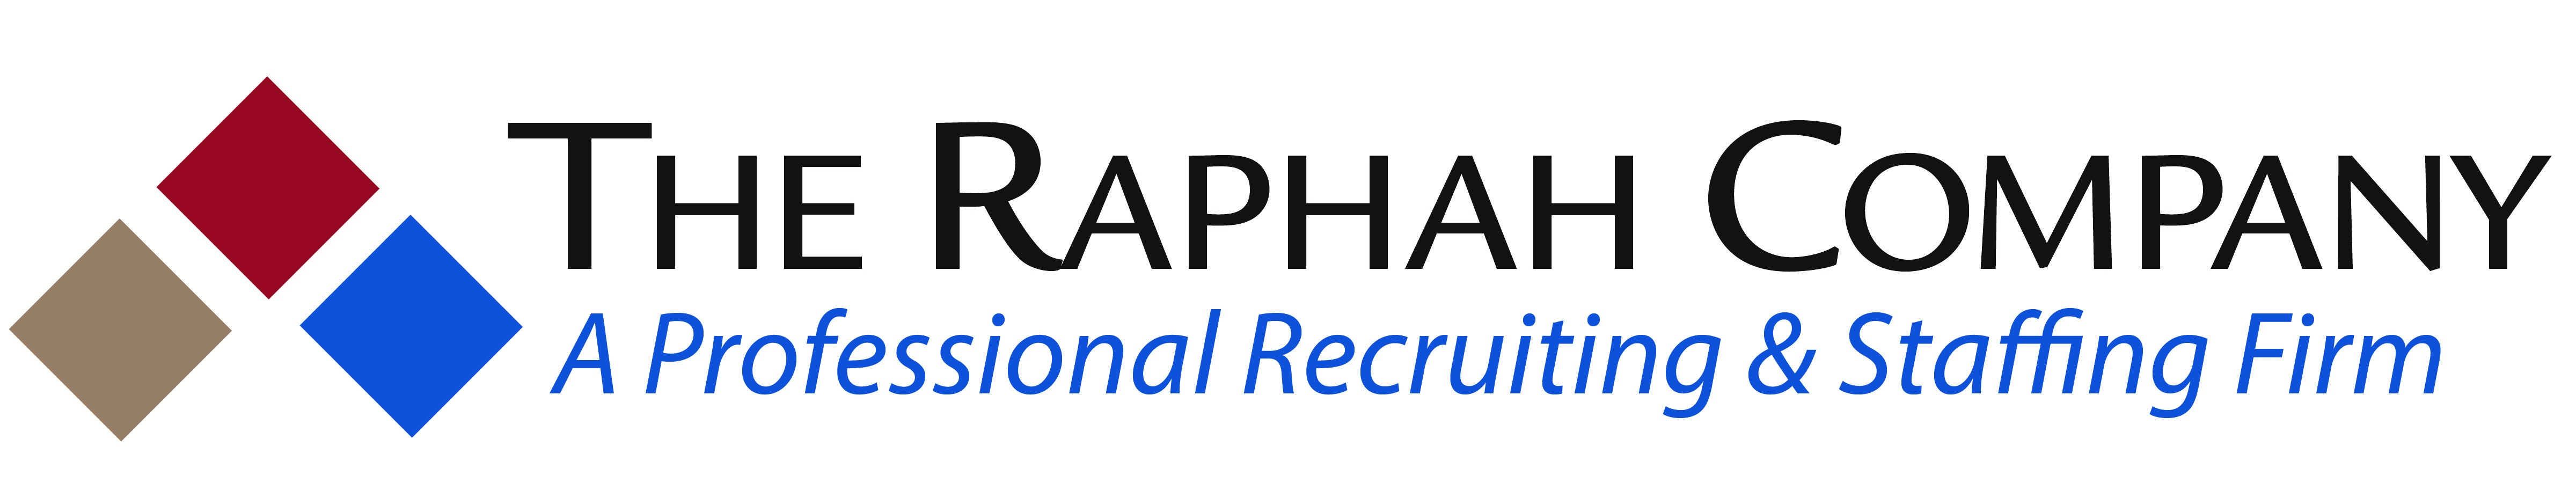 The raphah company logo 16inw rev recruiting crop